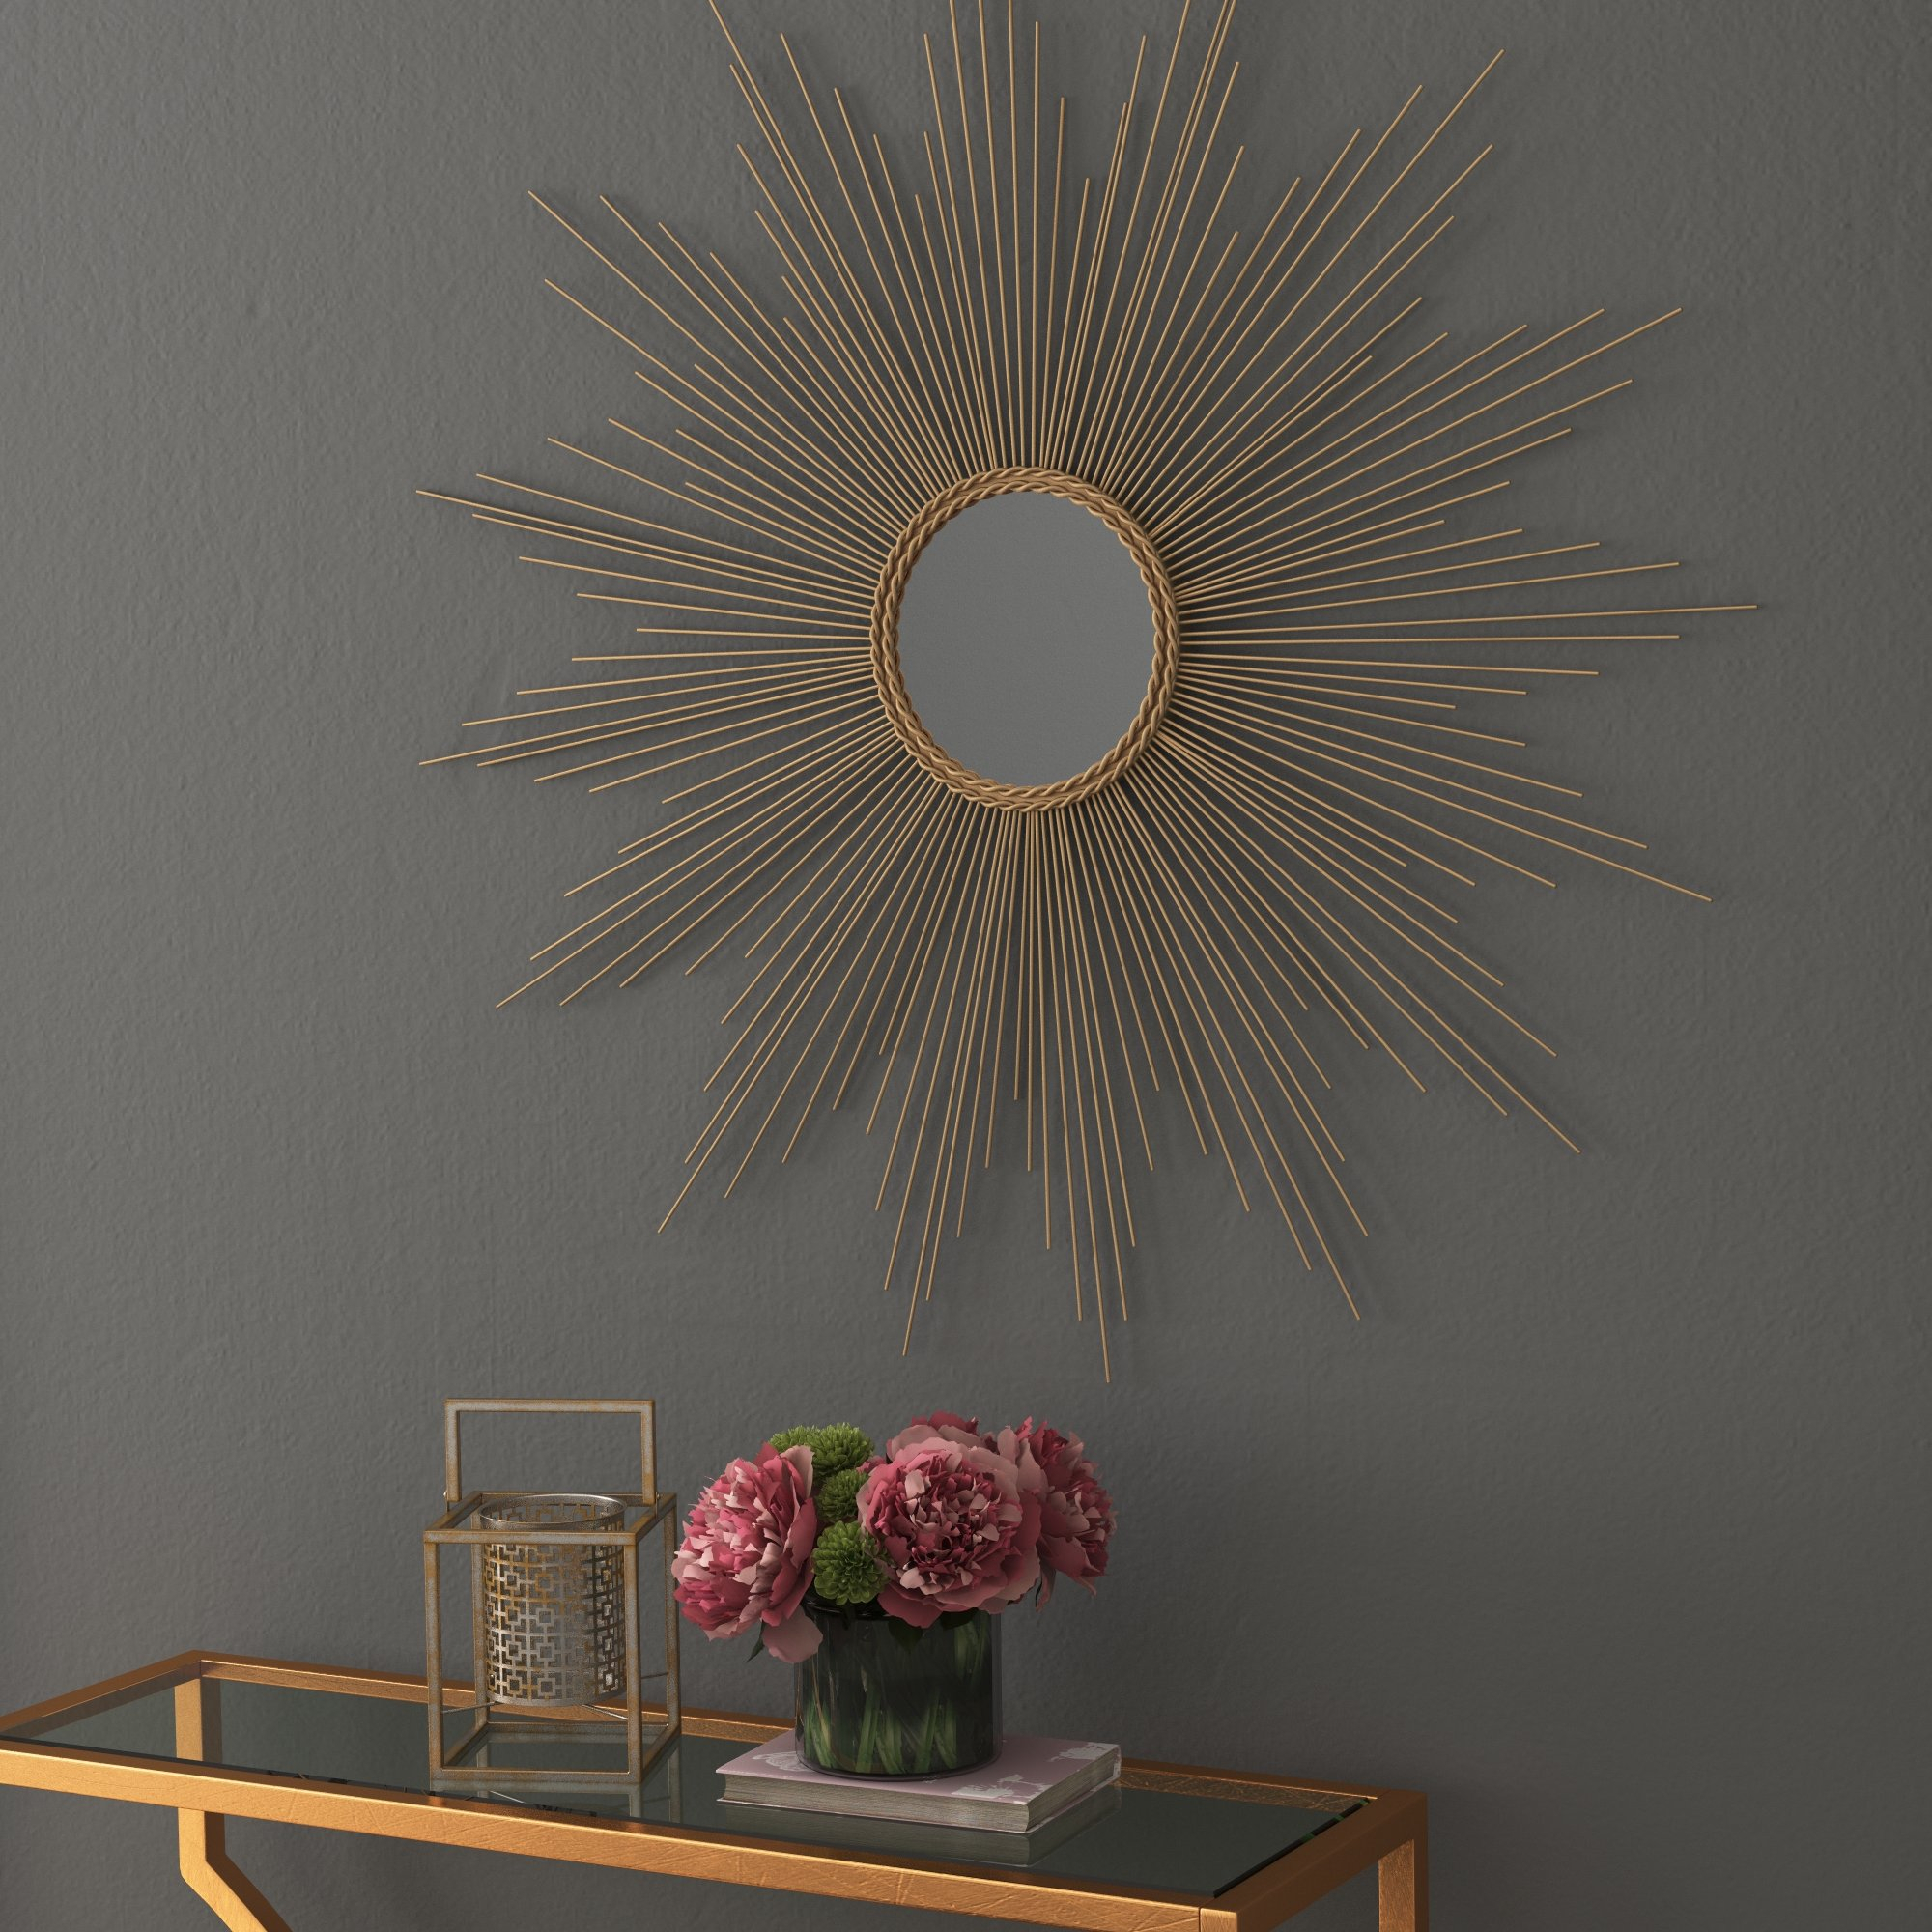 Modern Sunburst Mirrors | Allmodern With Regard To Jarrod Sunburst Accent Mirrors (View 13 of 30)